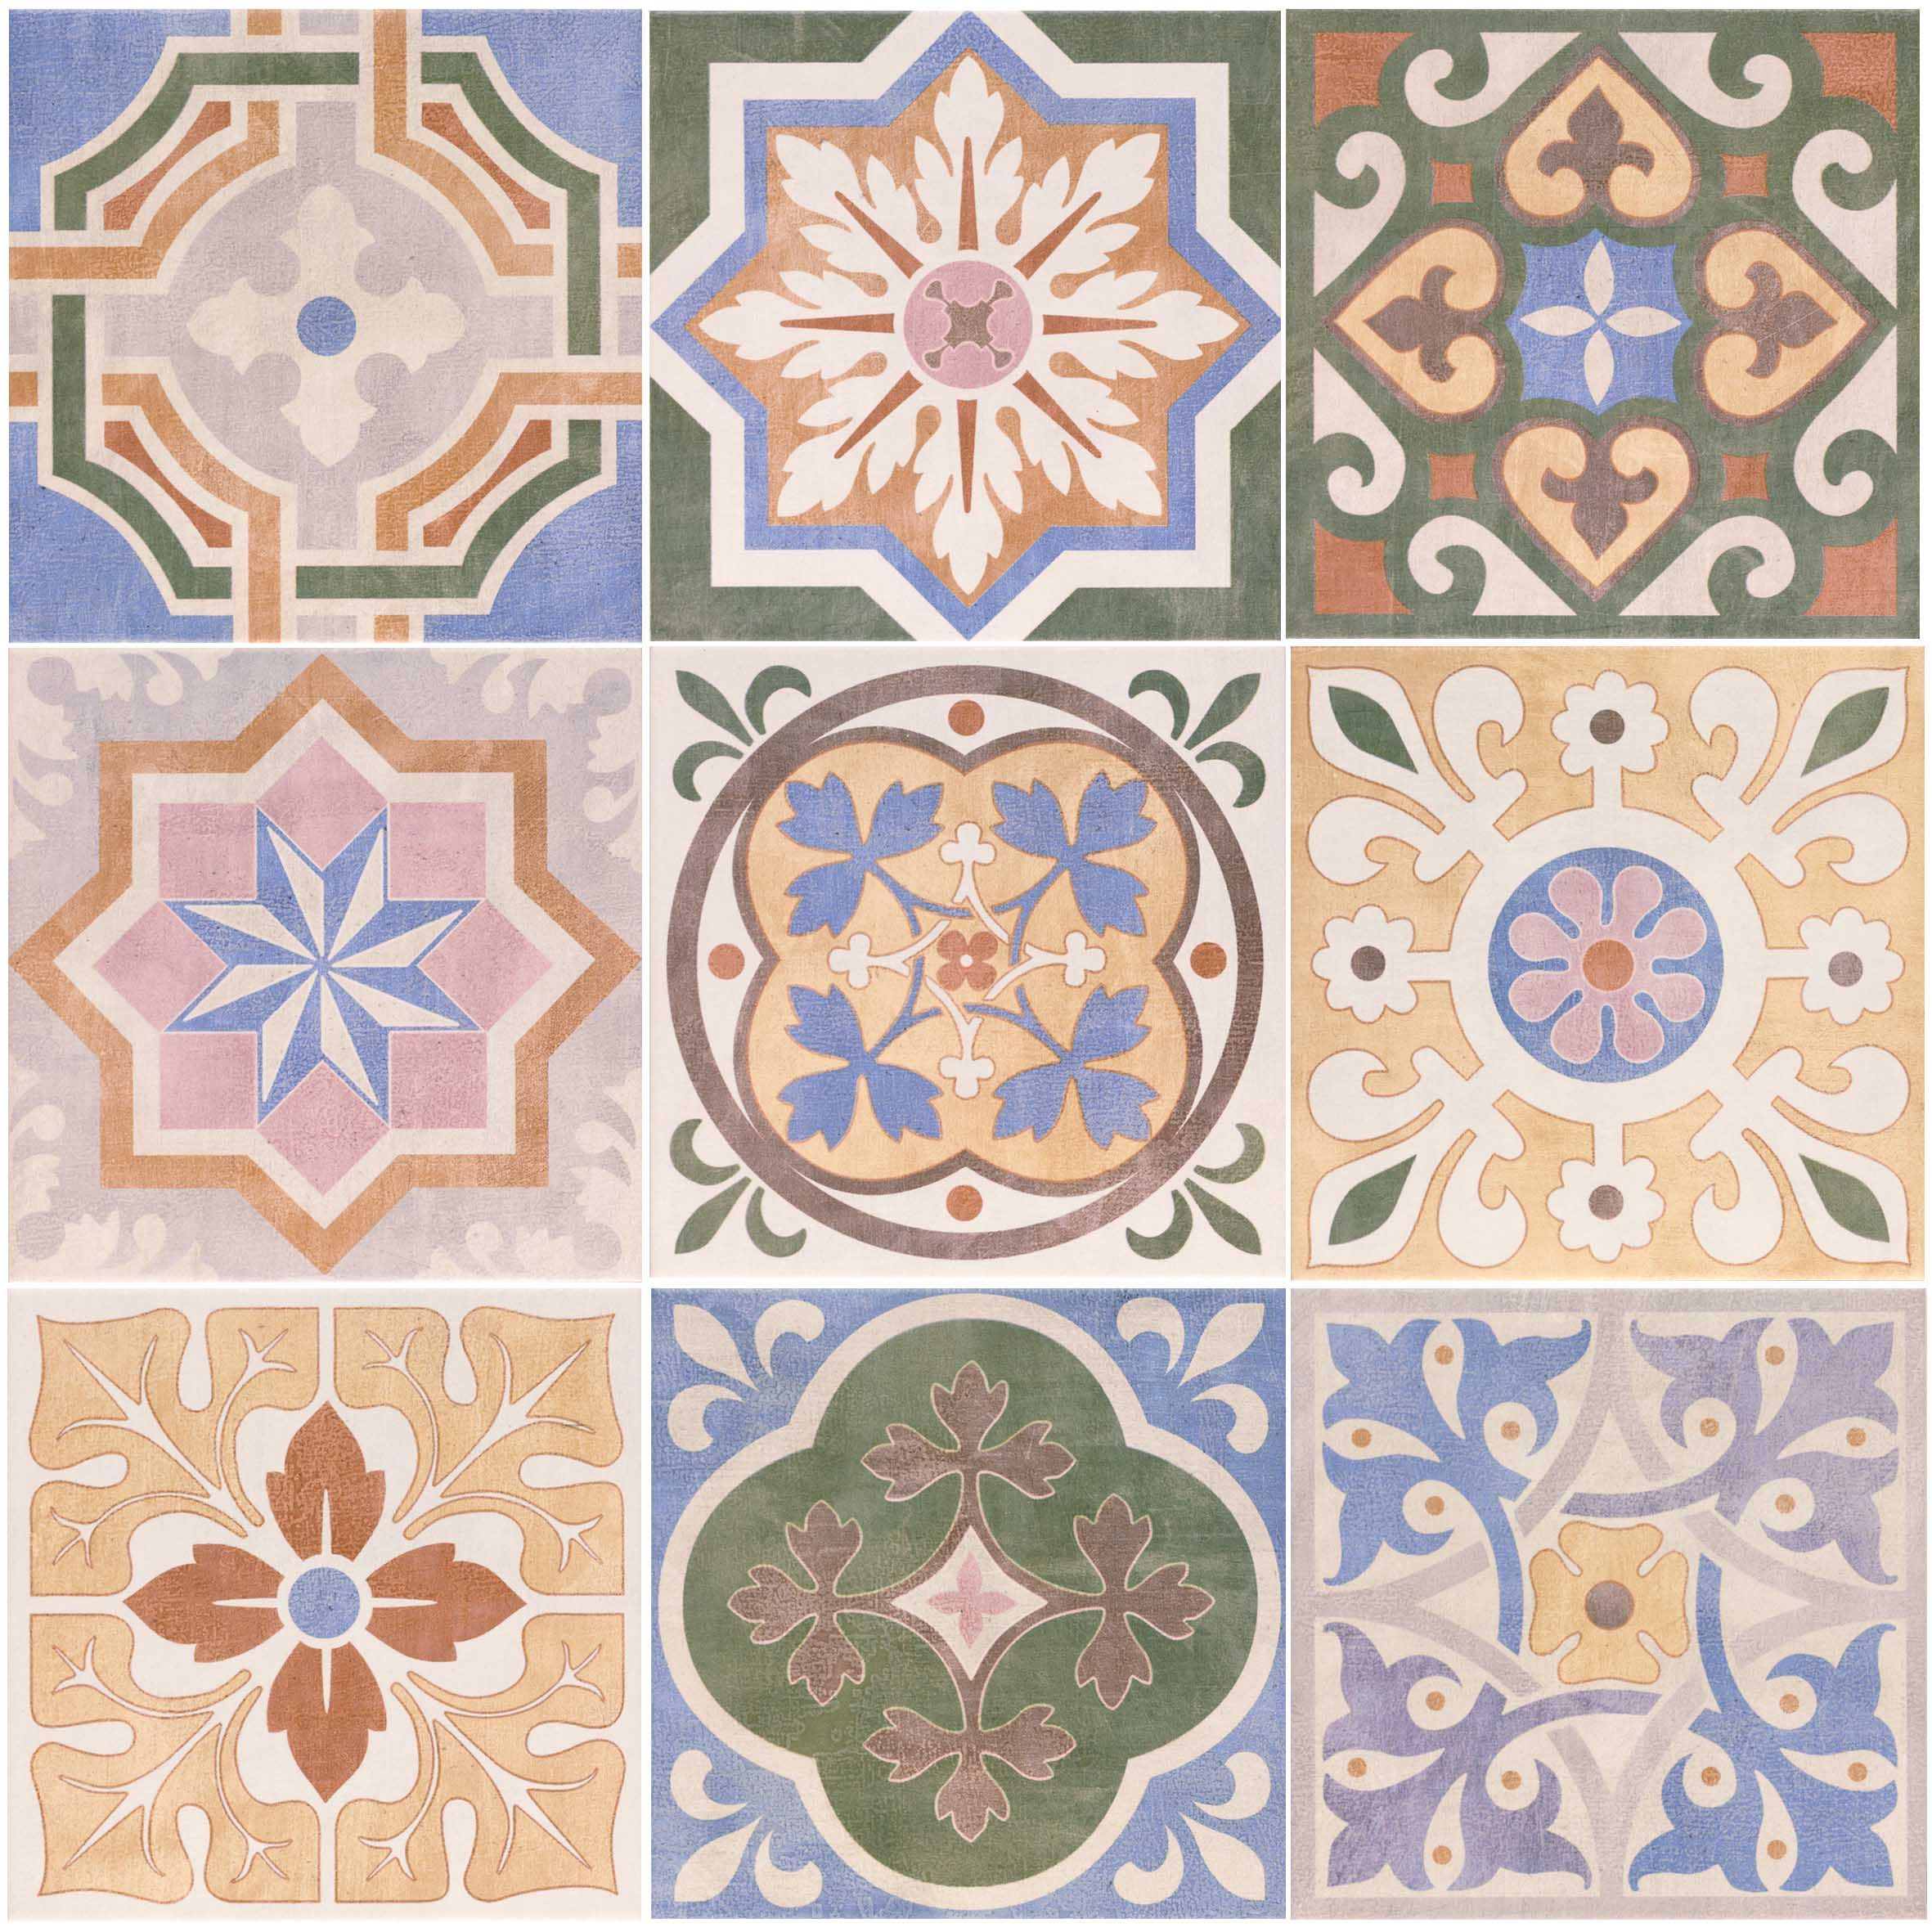 Wall Art Credence Credence Multicolore Beautiful Patterns Pinterest Tiles